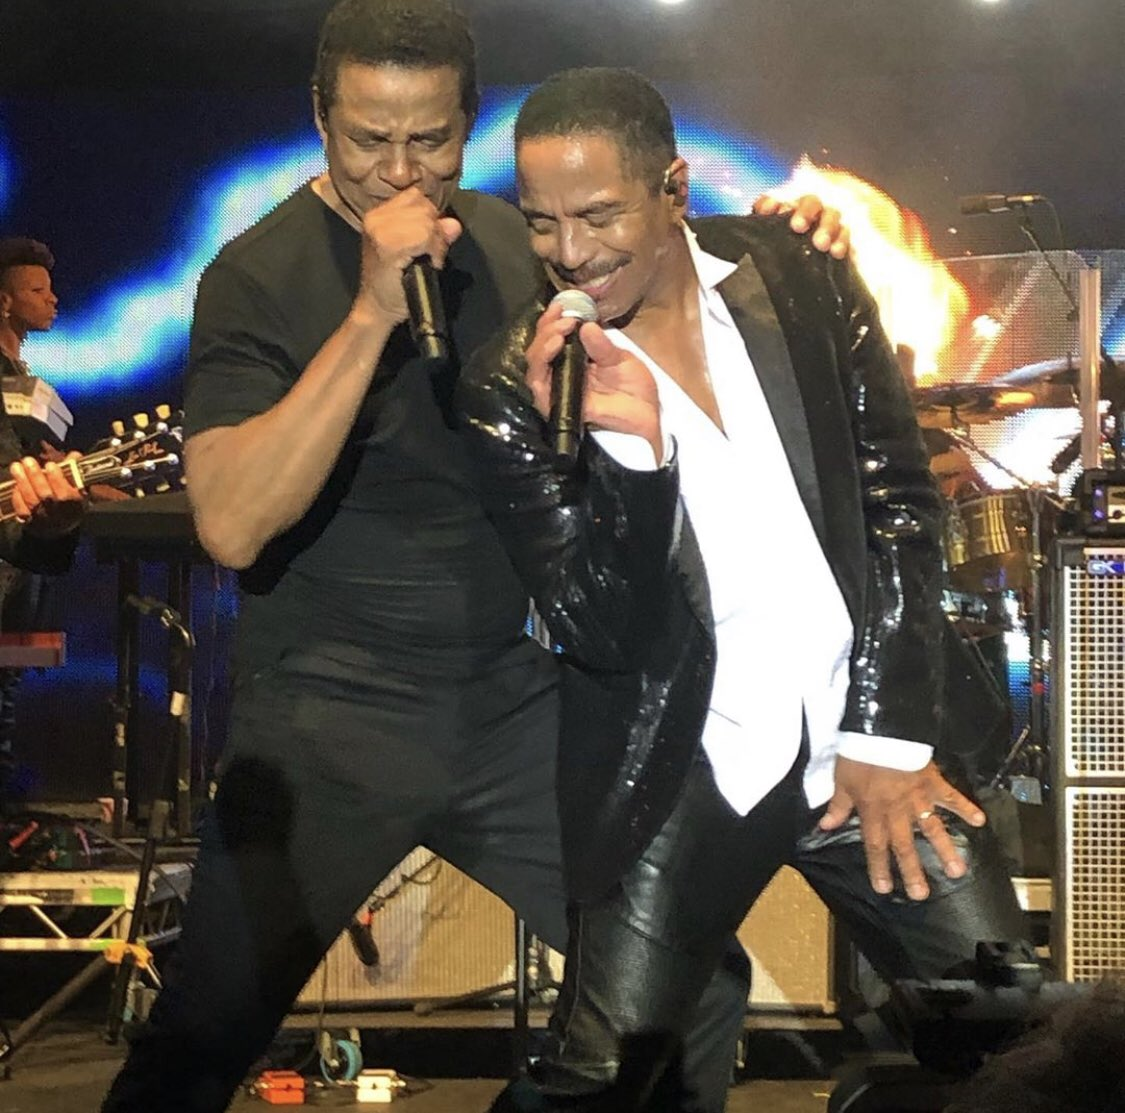 Vibin' with my bro @Marlon_Jackson at the @mostly_jazz fest last night!  Catch The @jacksons and I at the Audley End House in Essex tomorrow night!   @little_diamondwhite <br>http://pic.twitter.com/8hiicg2sci